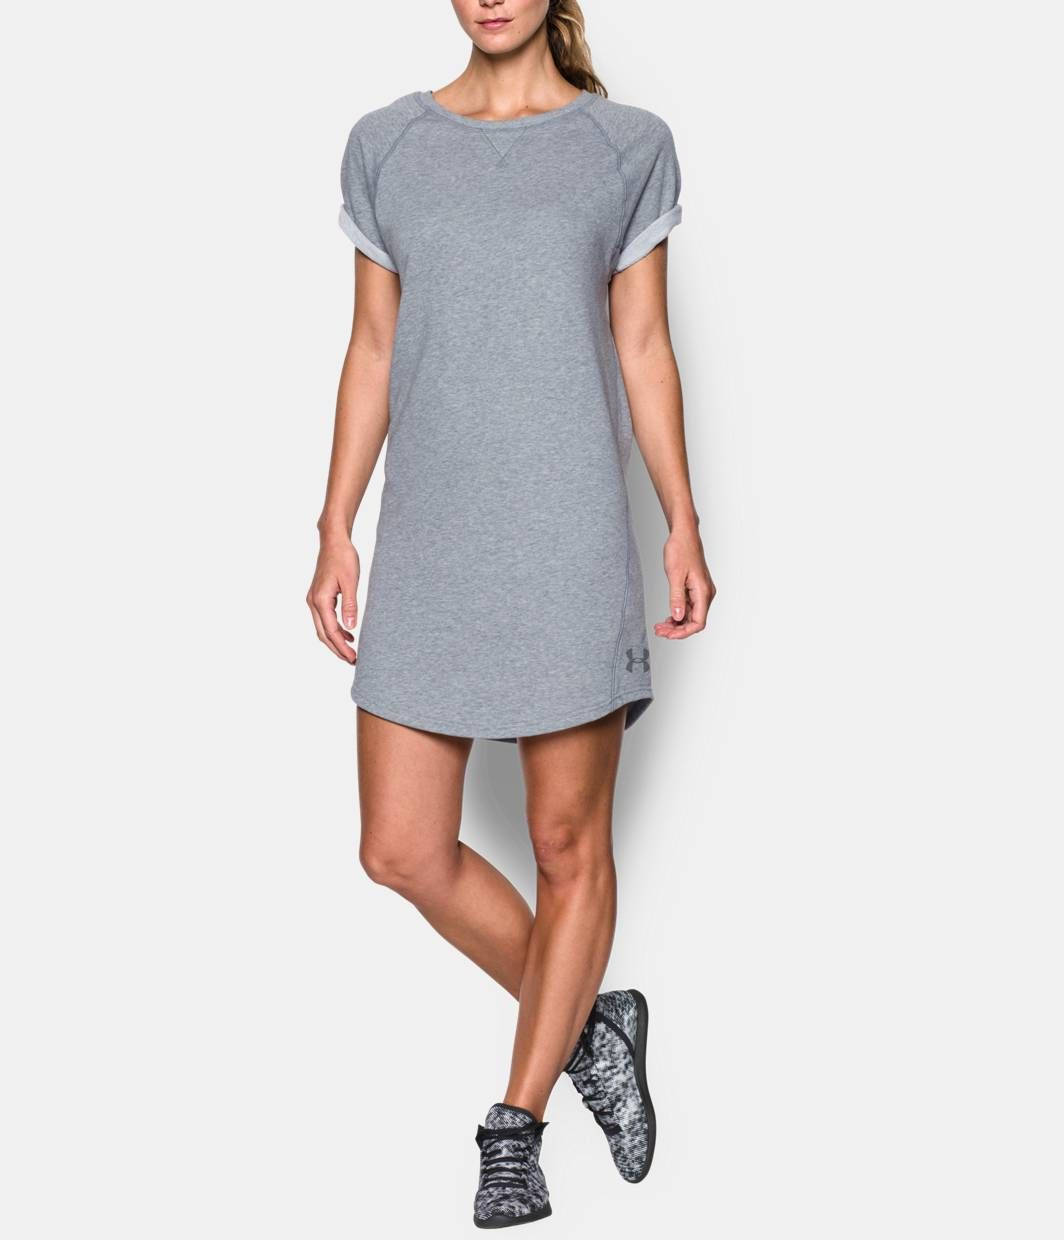 c5817ca5daa Shop Under Armour for Women's UA Favorite French Terry Tunic Dress in our  Womens Tops department. Free shipping is available in US.